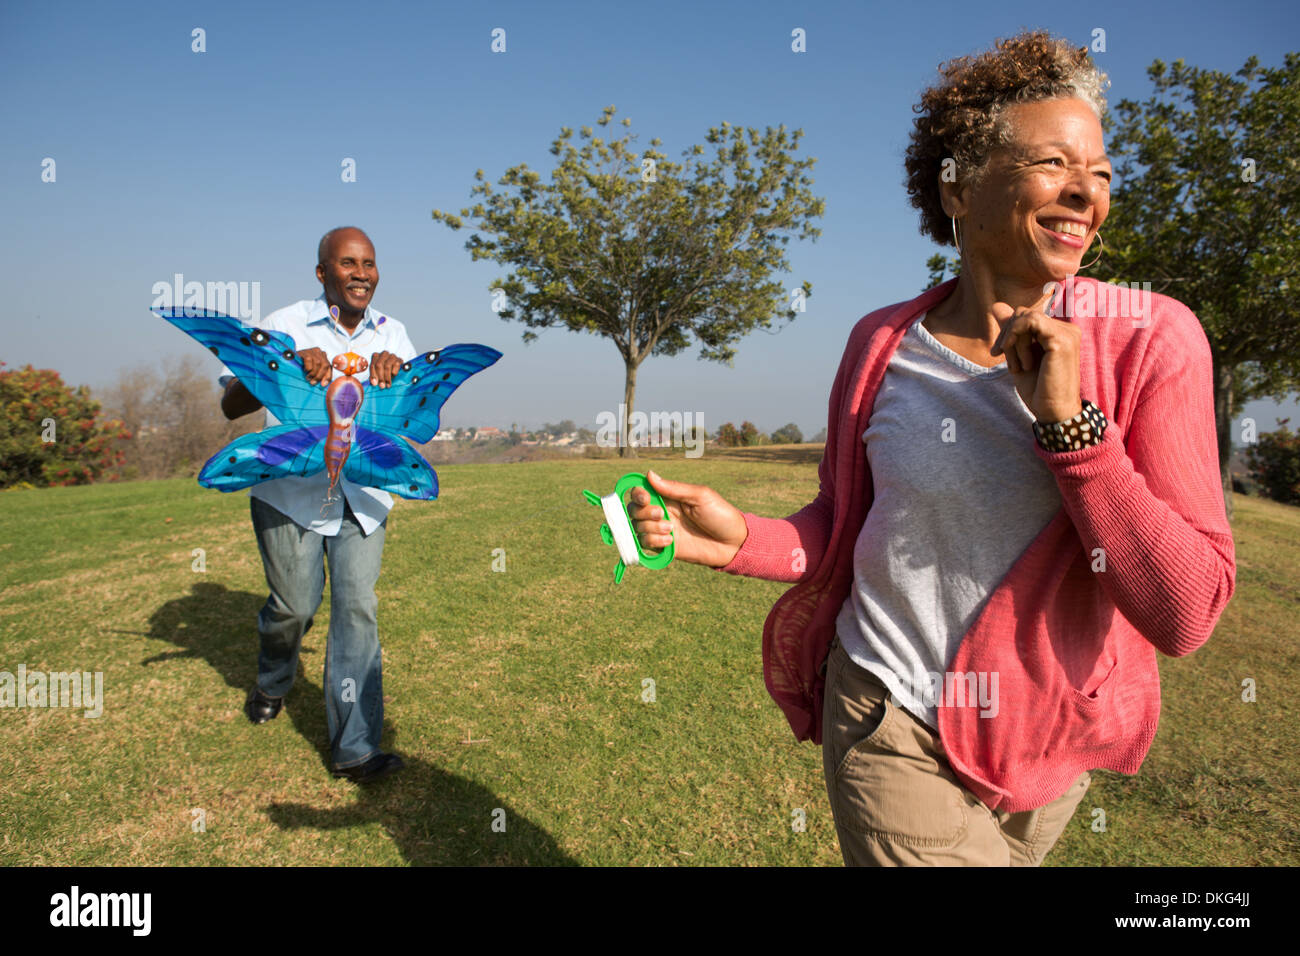 Senior couple running in park with kite - Stock Image